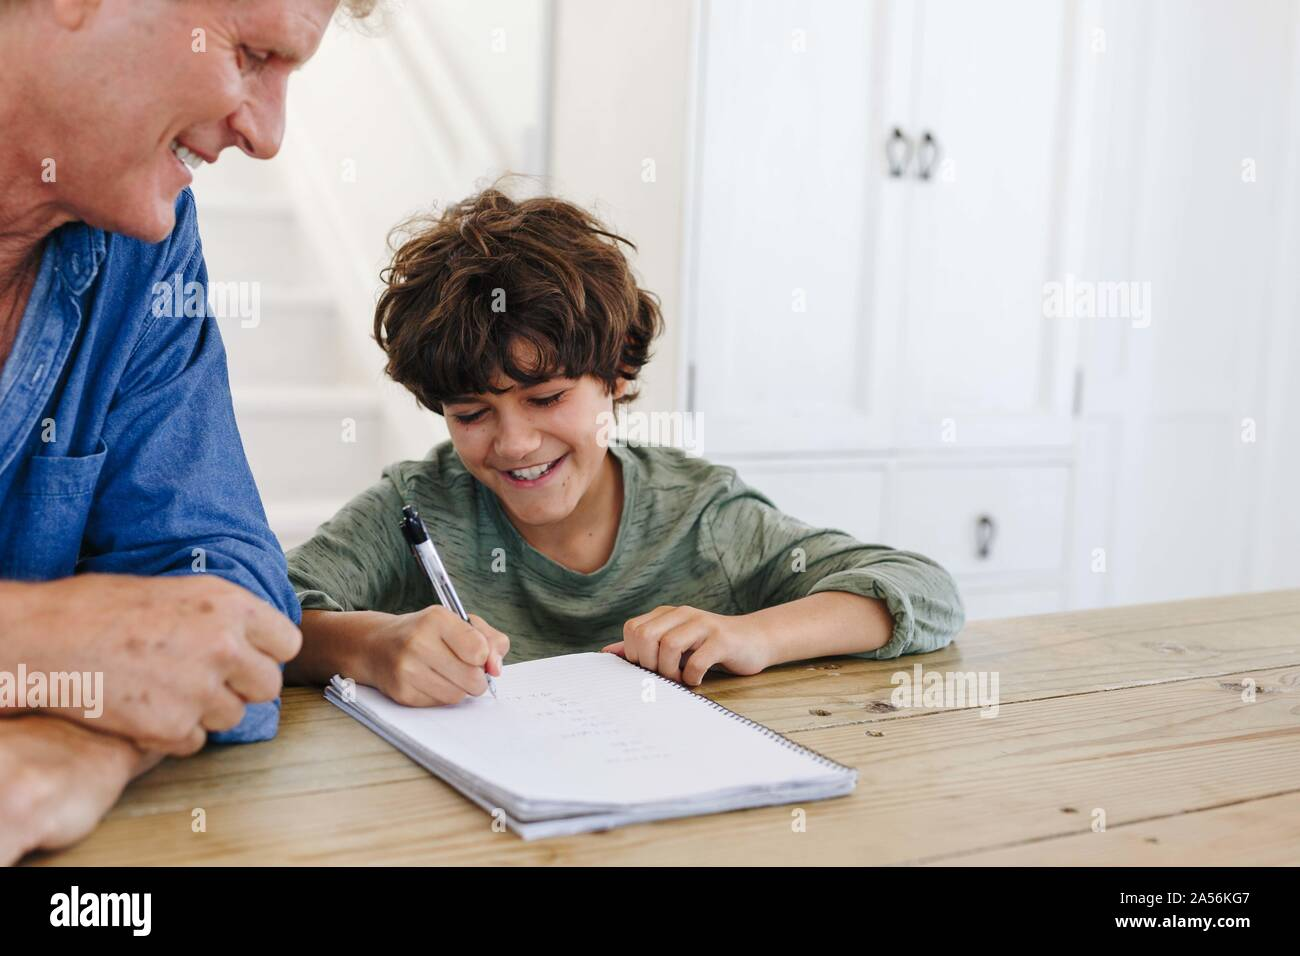 Father helping son with homework at home Stock Photo